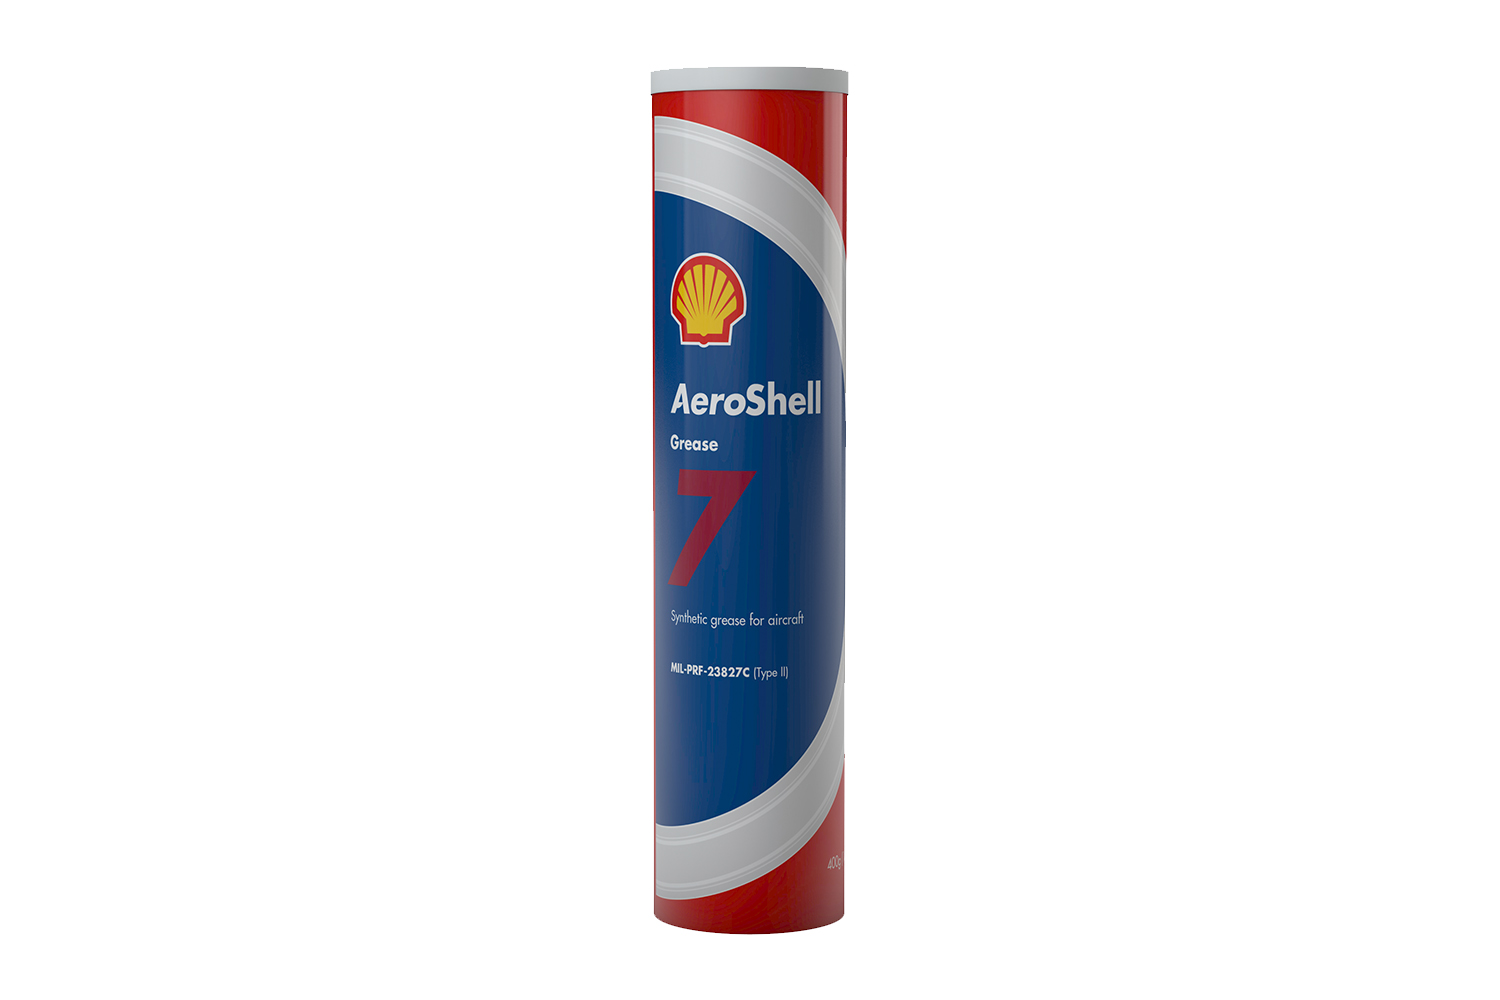 images/j2store/products/diffusees/34158-aeroshell-grease-7-400g-catridge.jpg